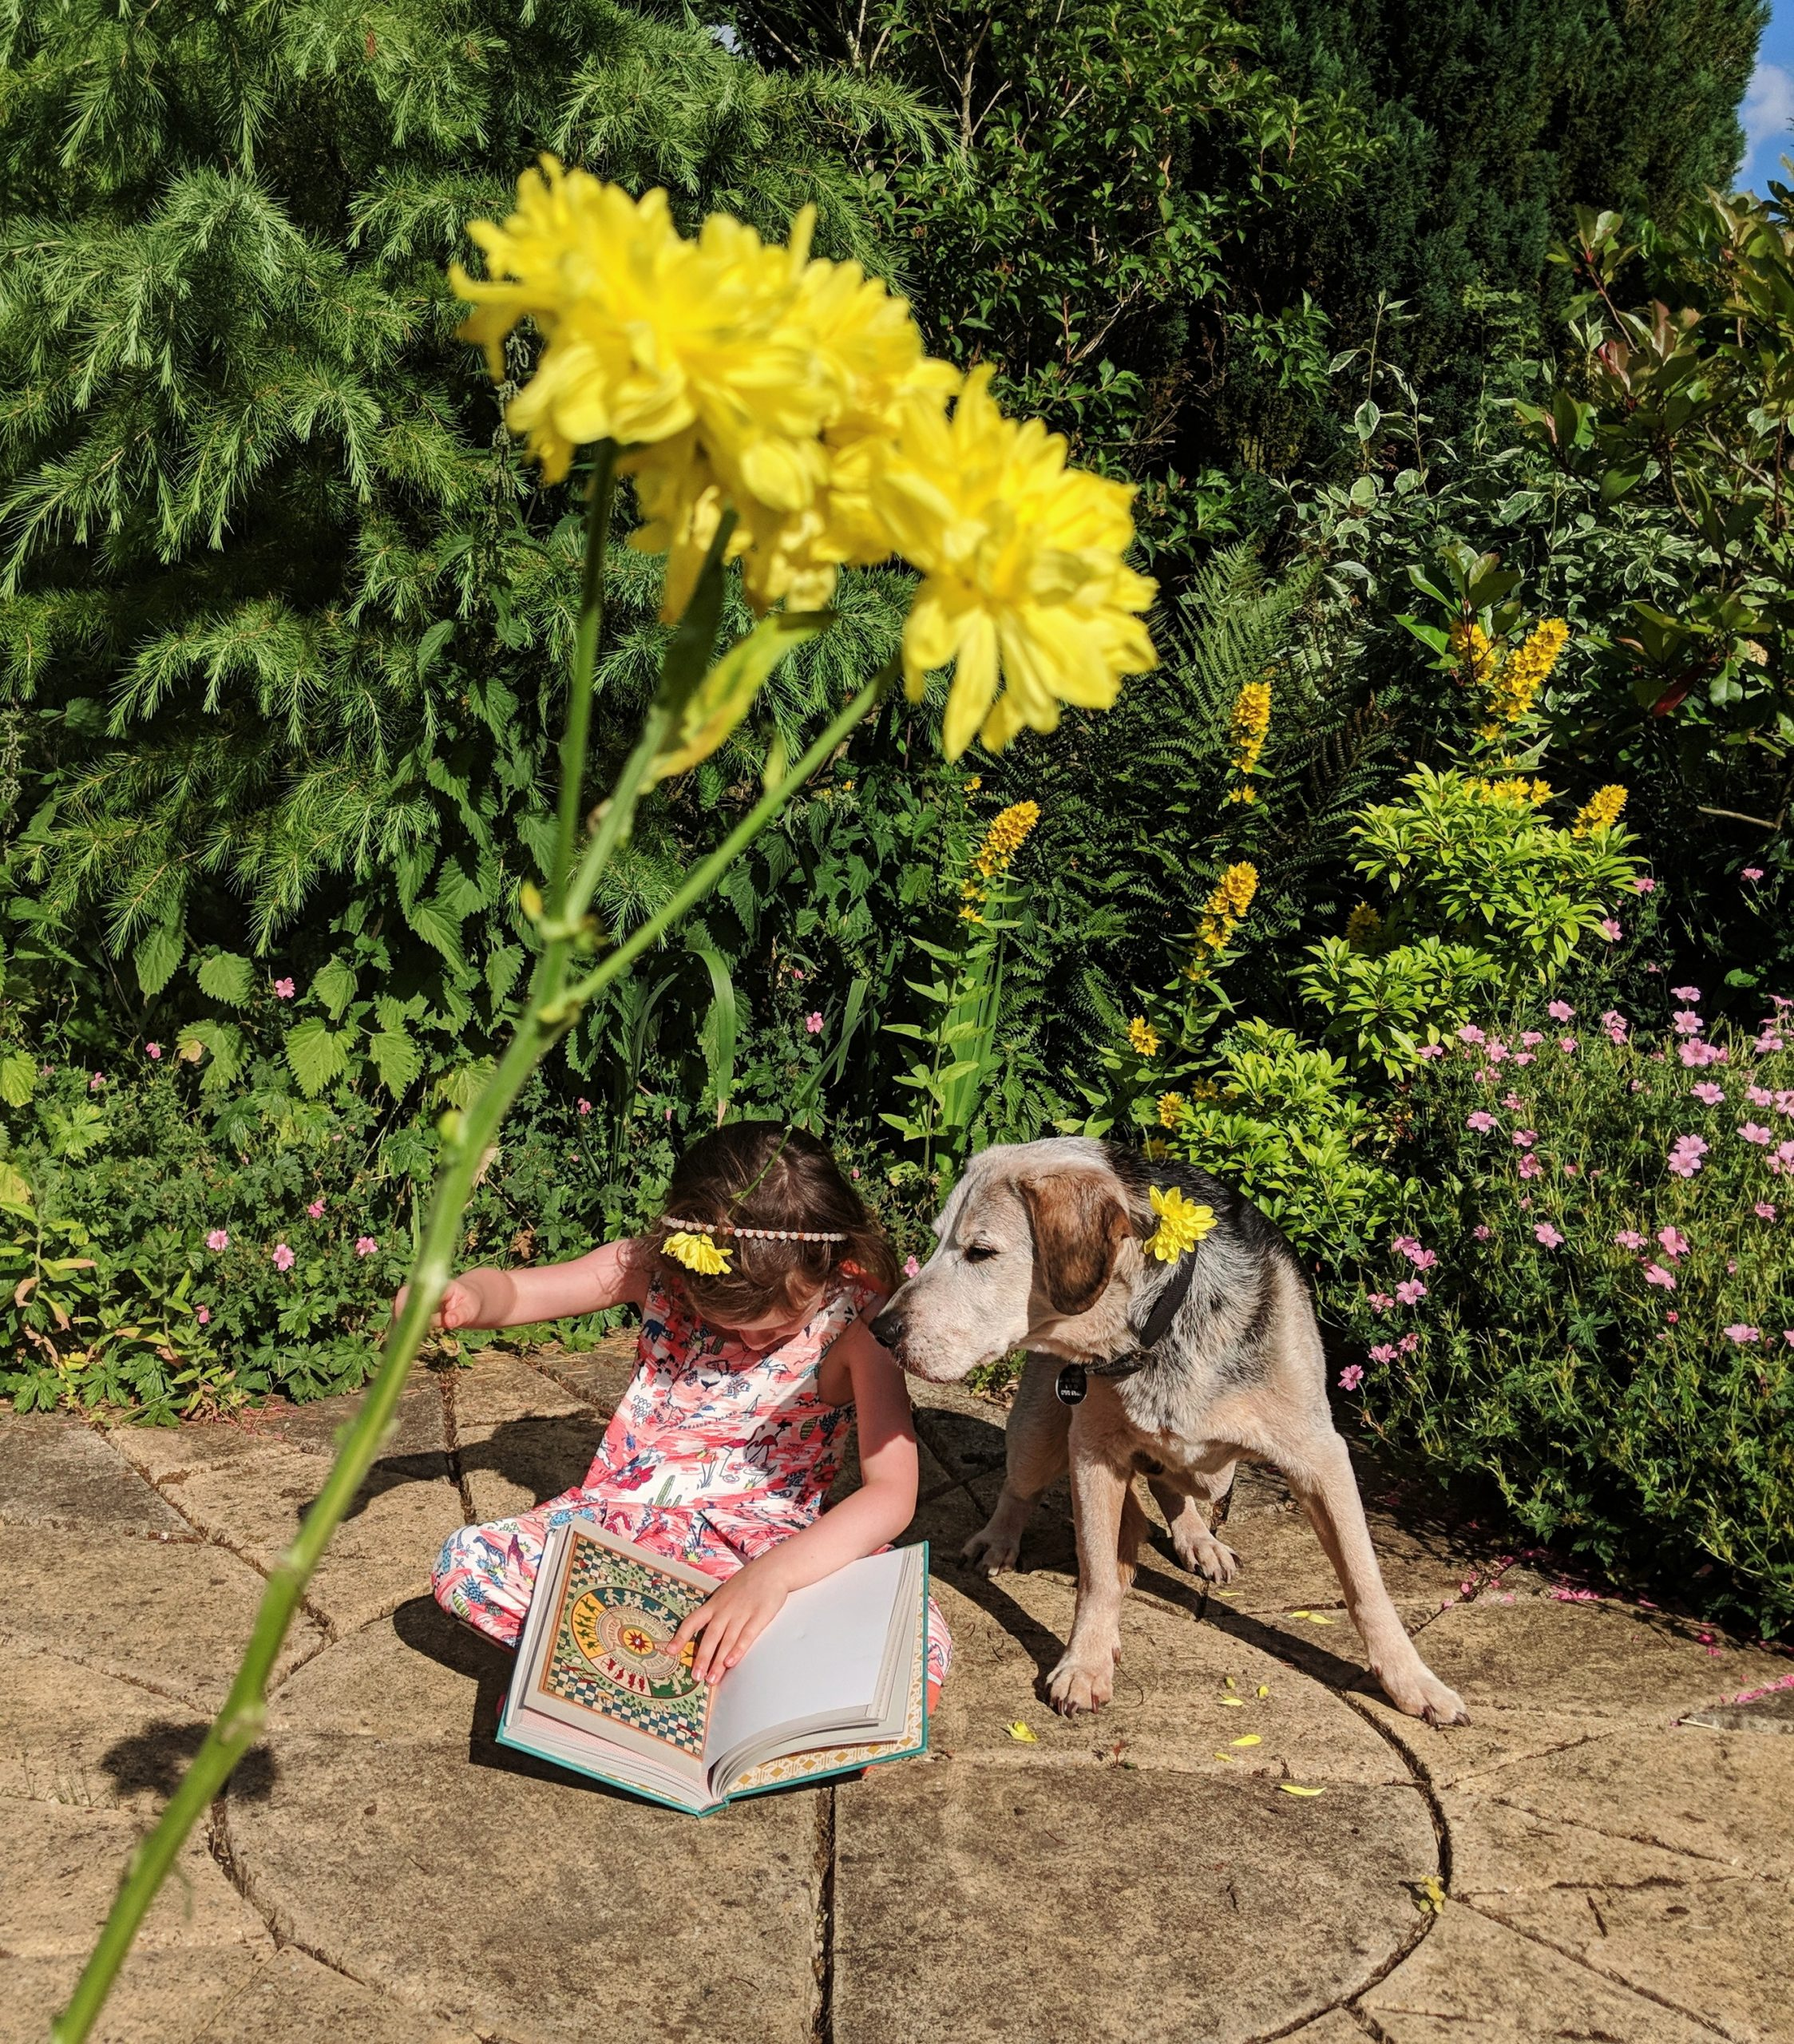 Buddy reading on Instagram - A little girl reading with her dog